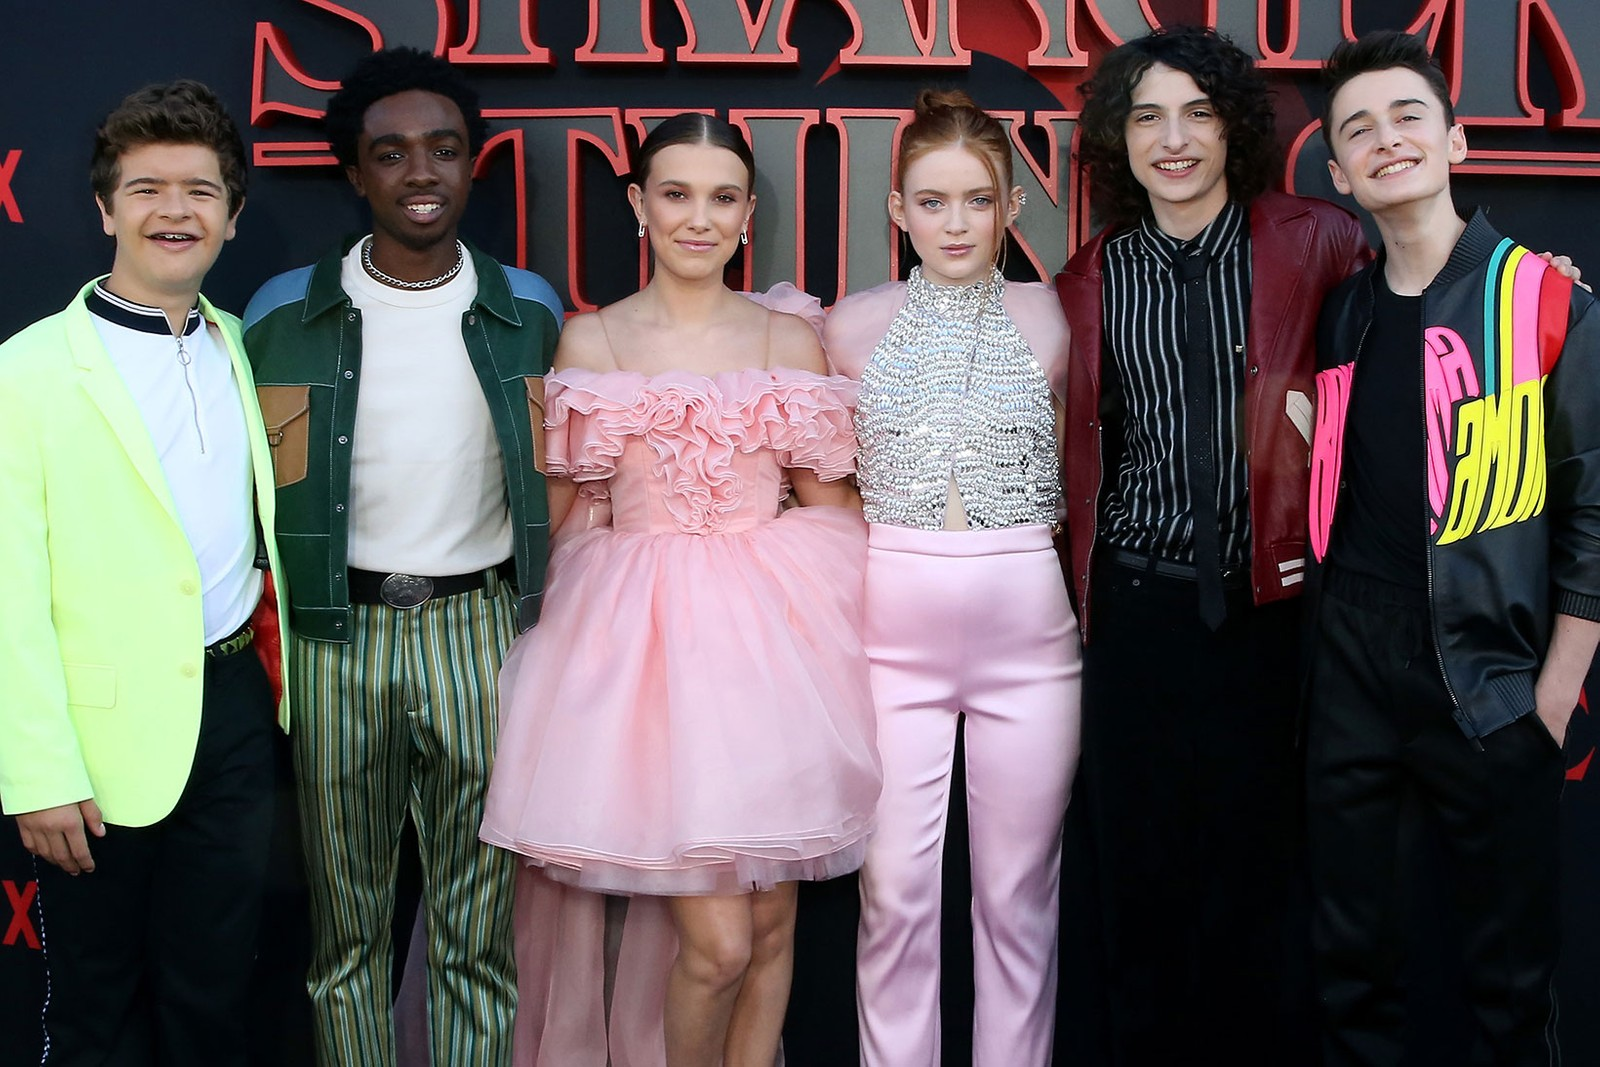 sadie sink stranger things netflix max millie bobby brown vegan net worth undercover